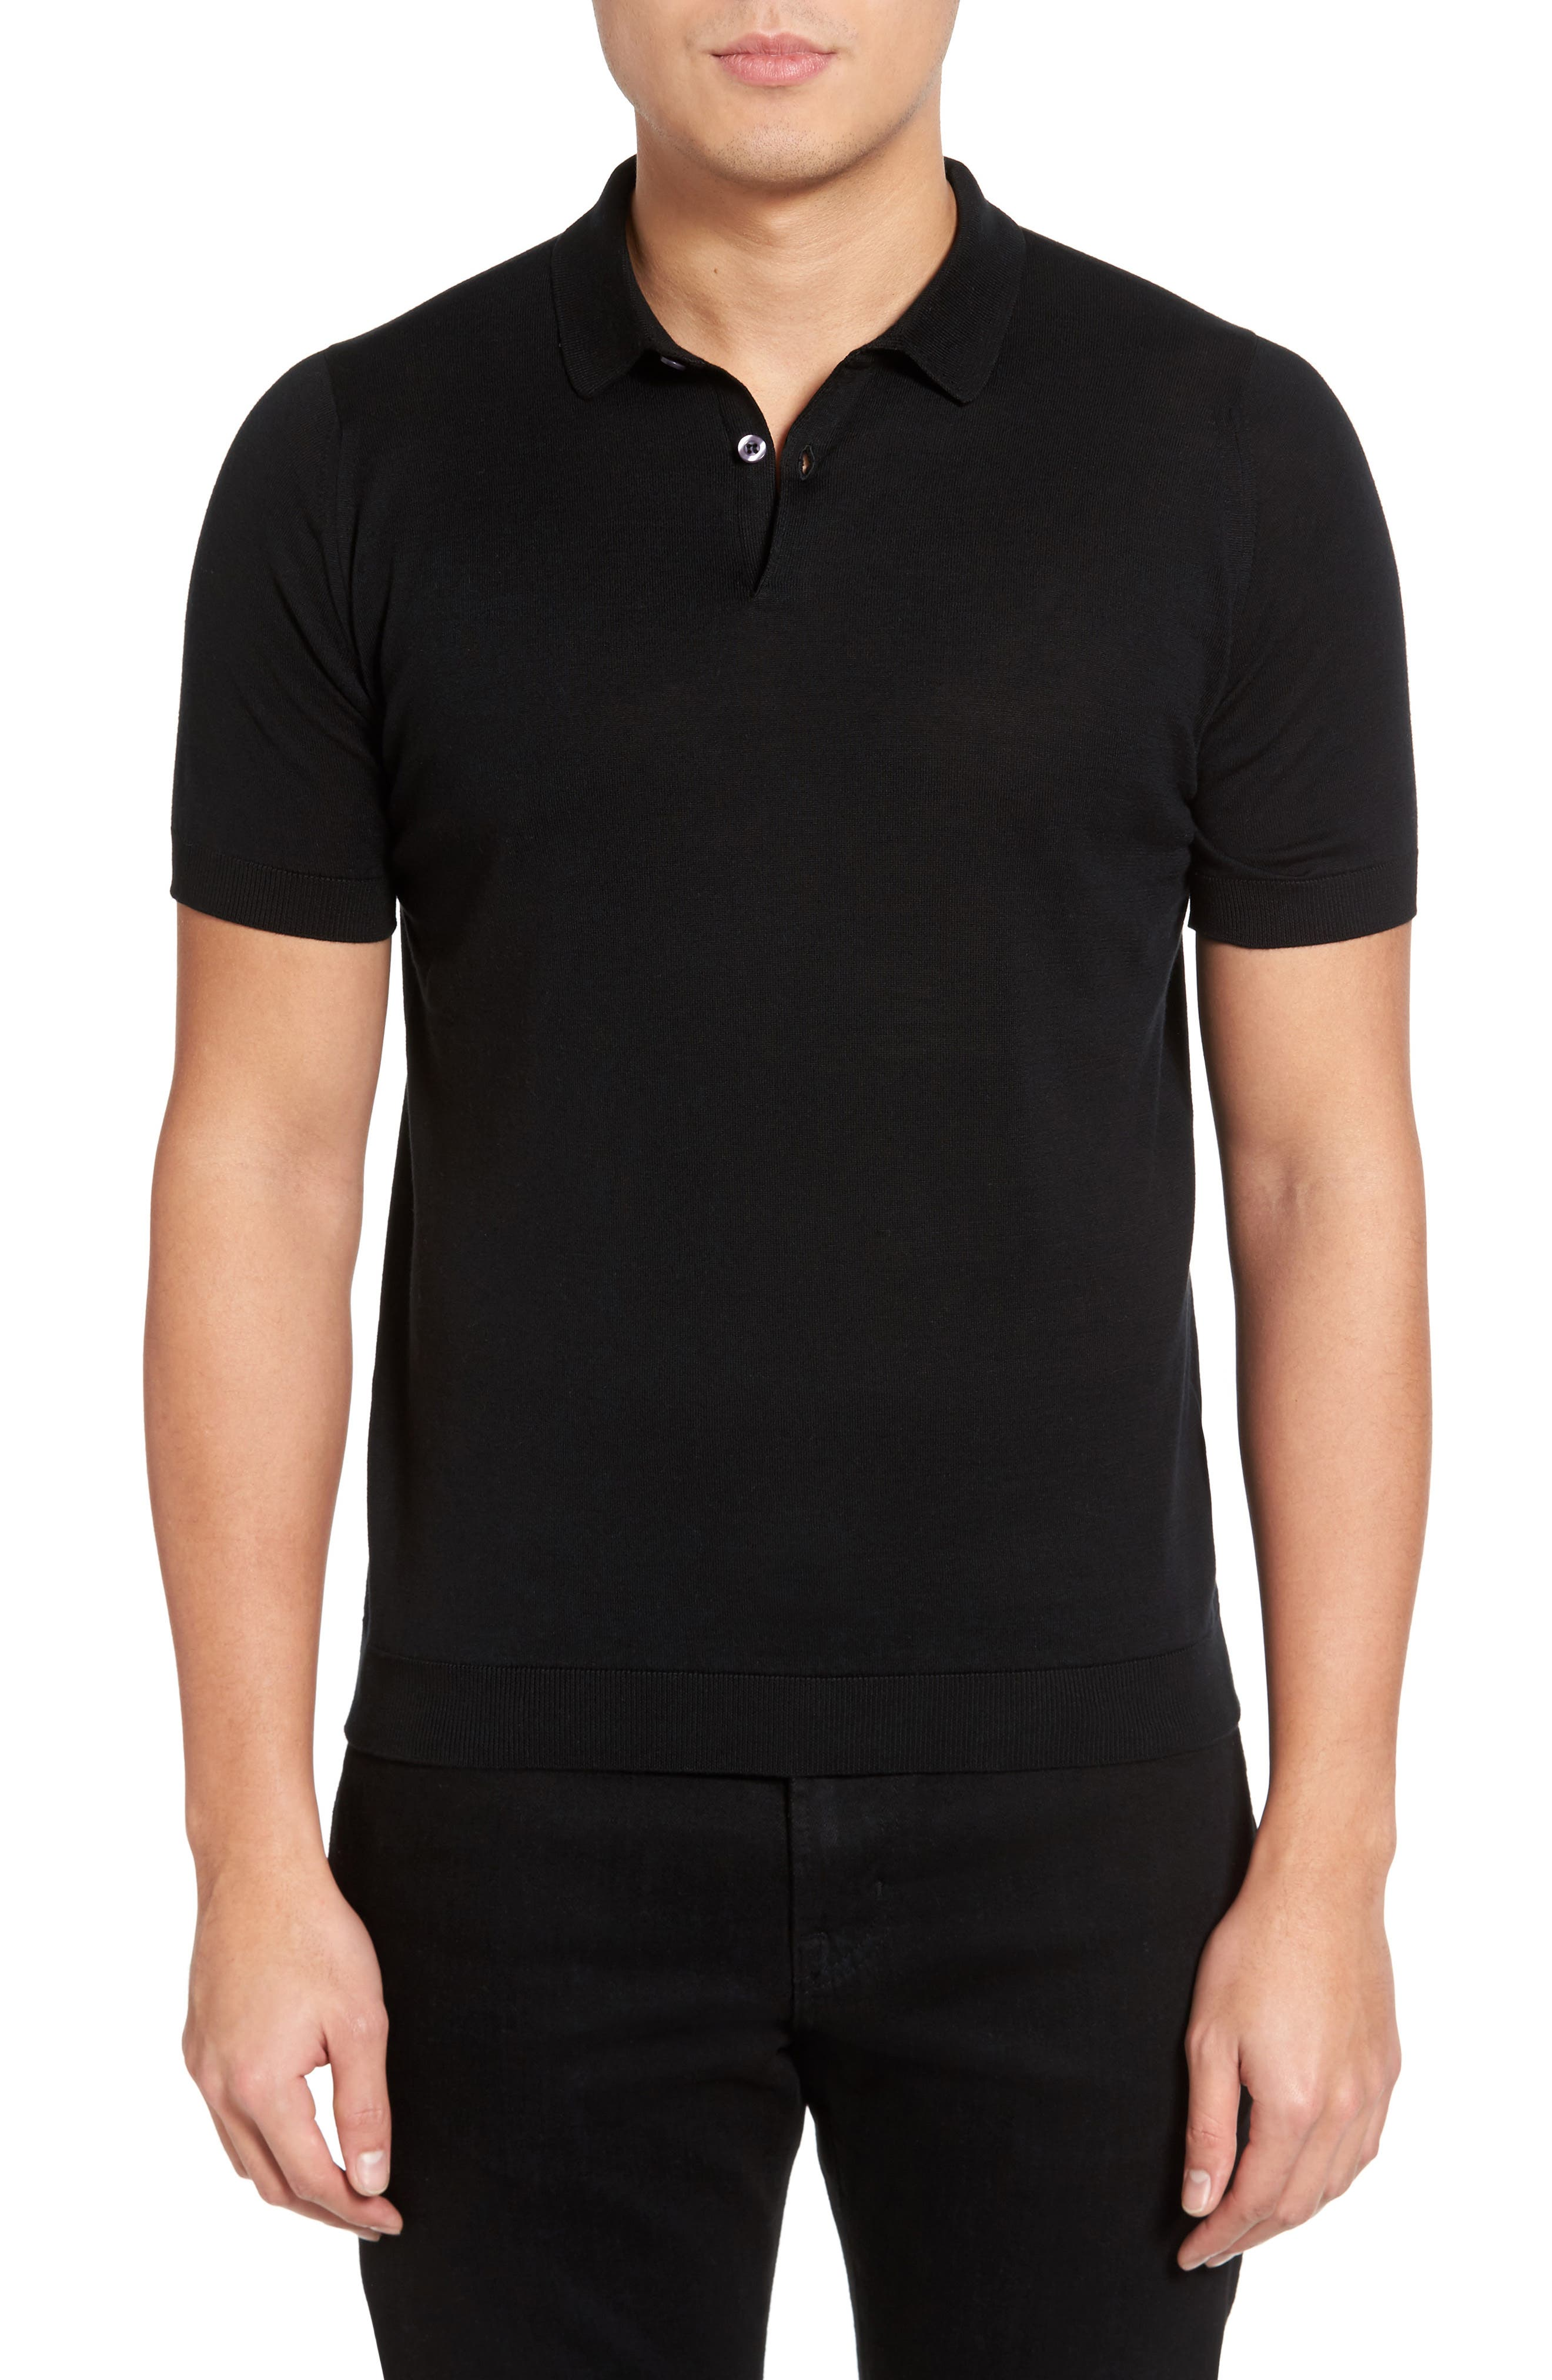 Main Image - John Smedley Seal Island Cotton Polo